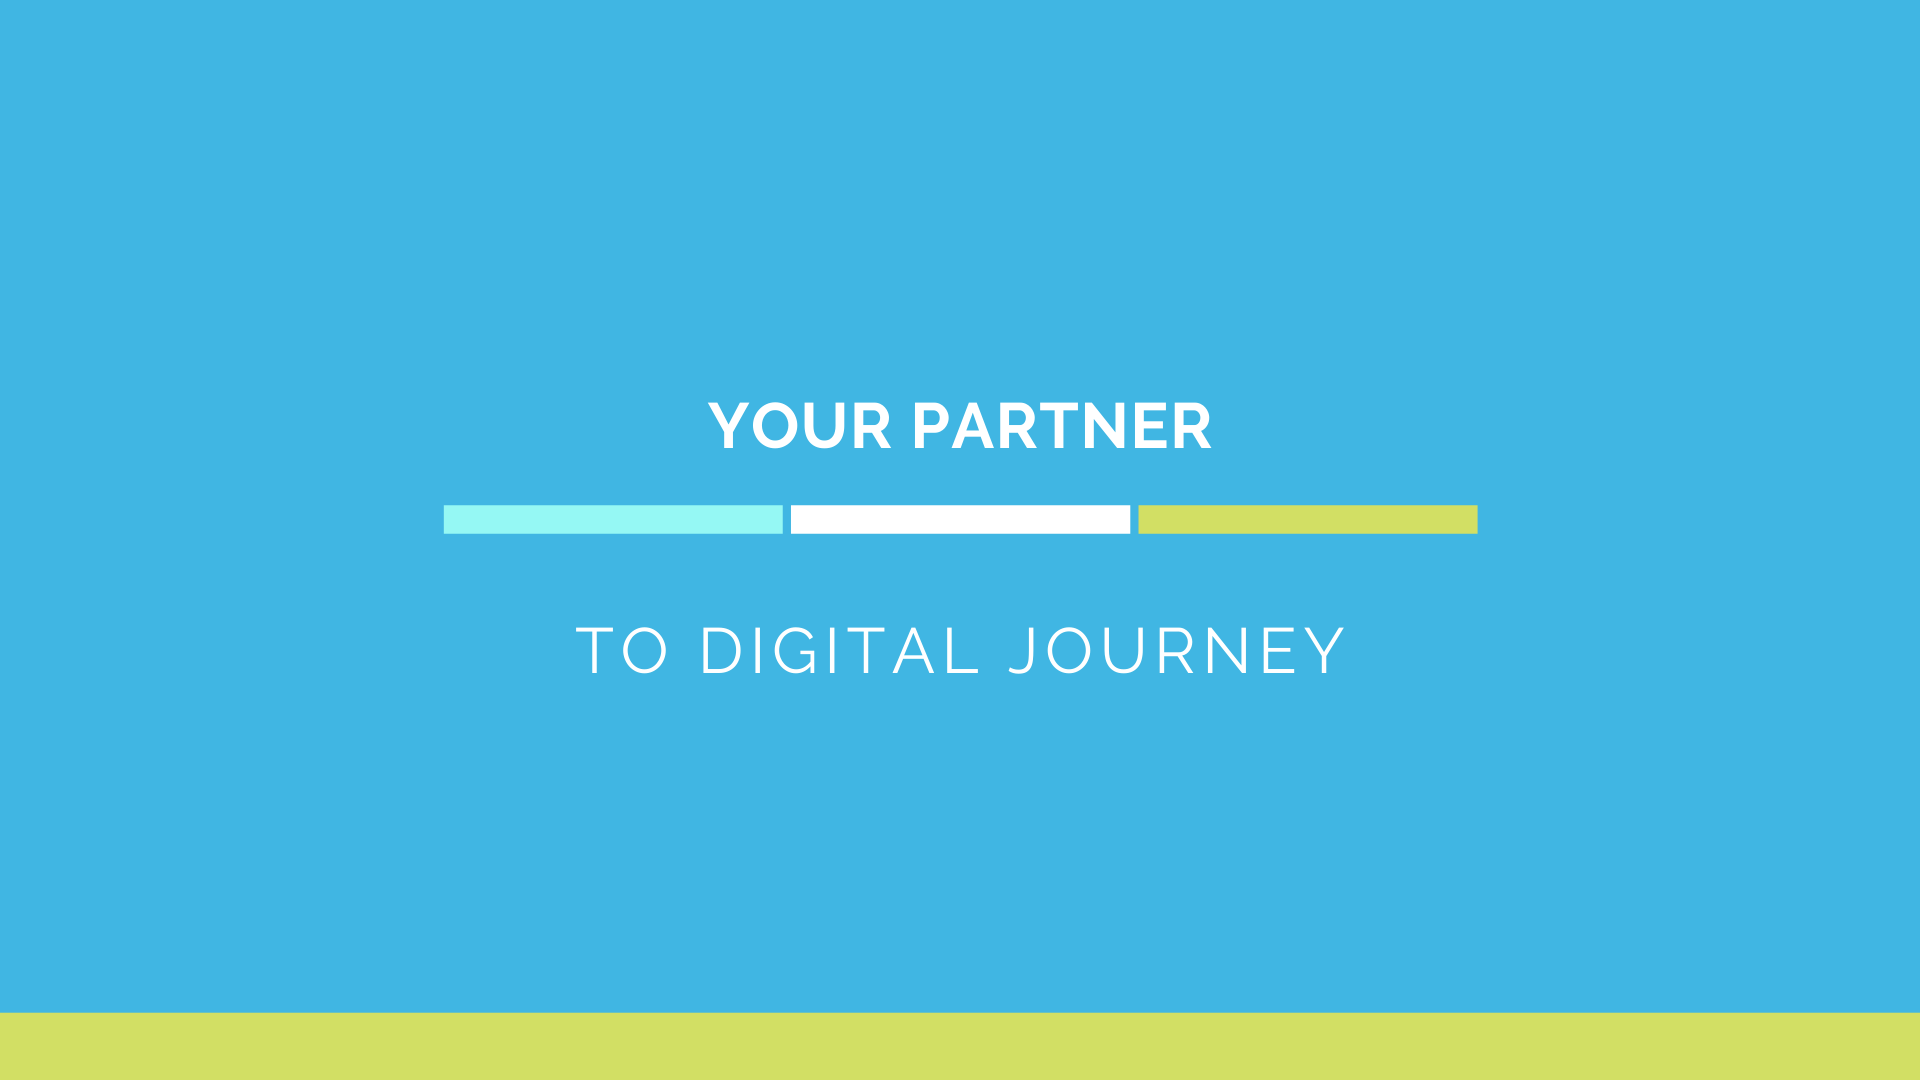 Partner to Digital Journey - CocoonIt Services Mumbai